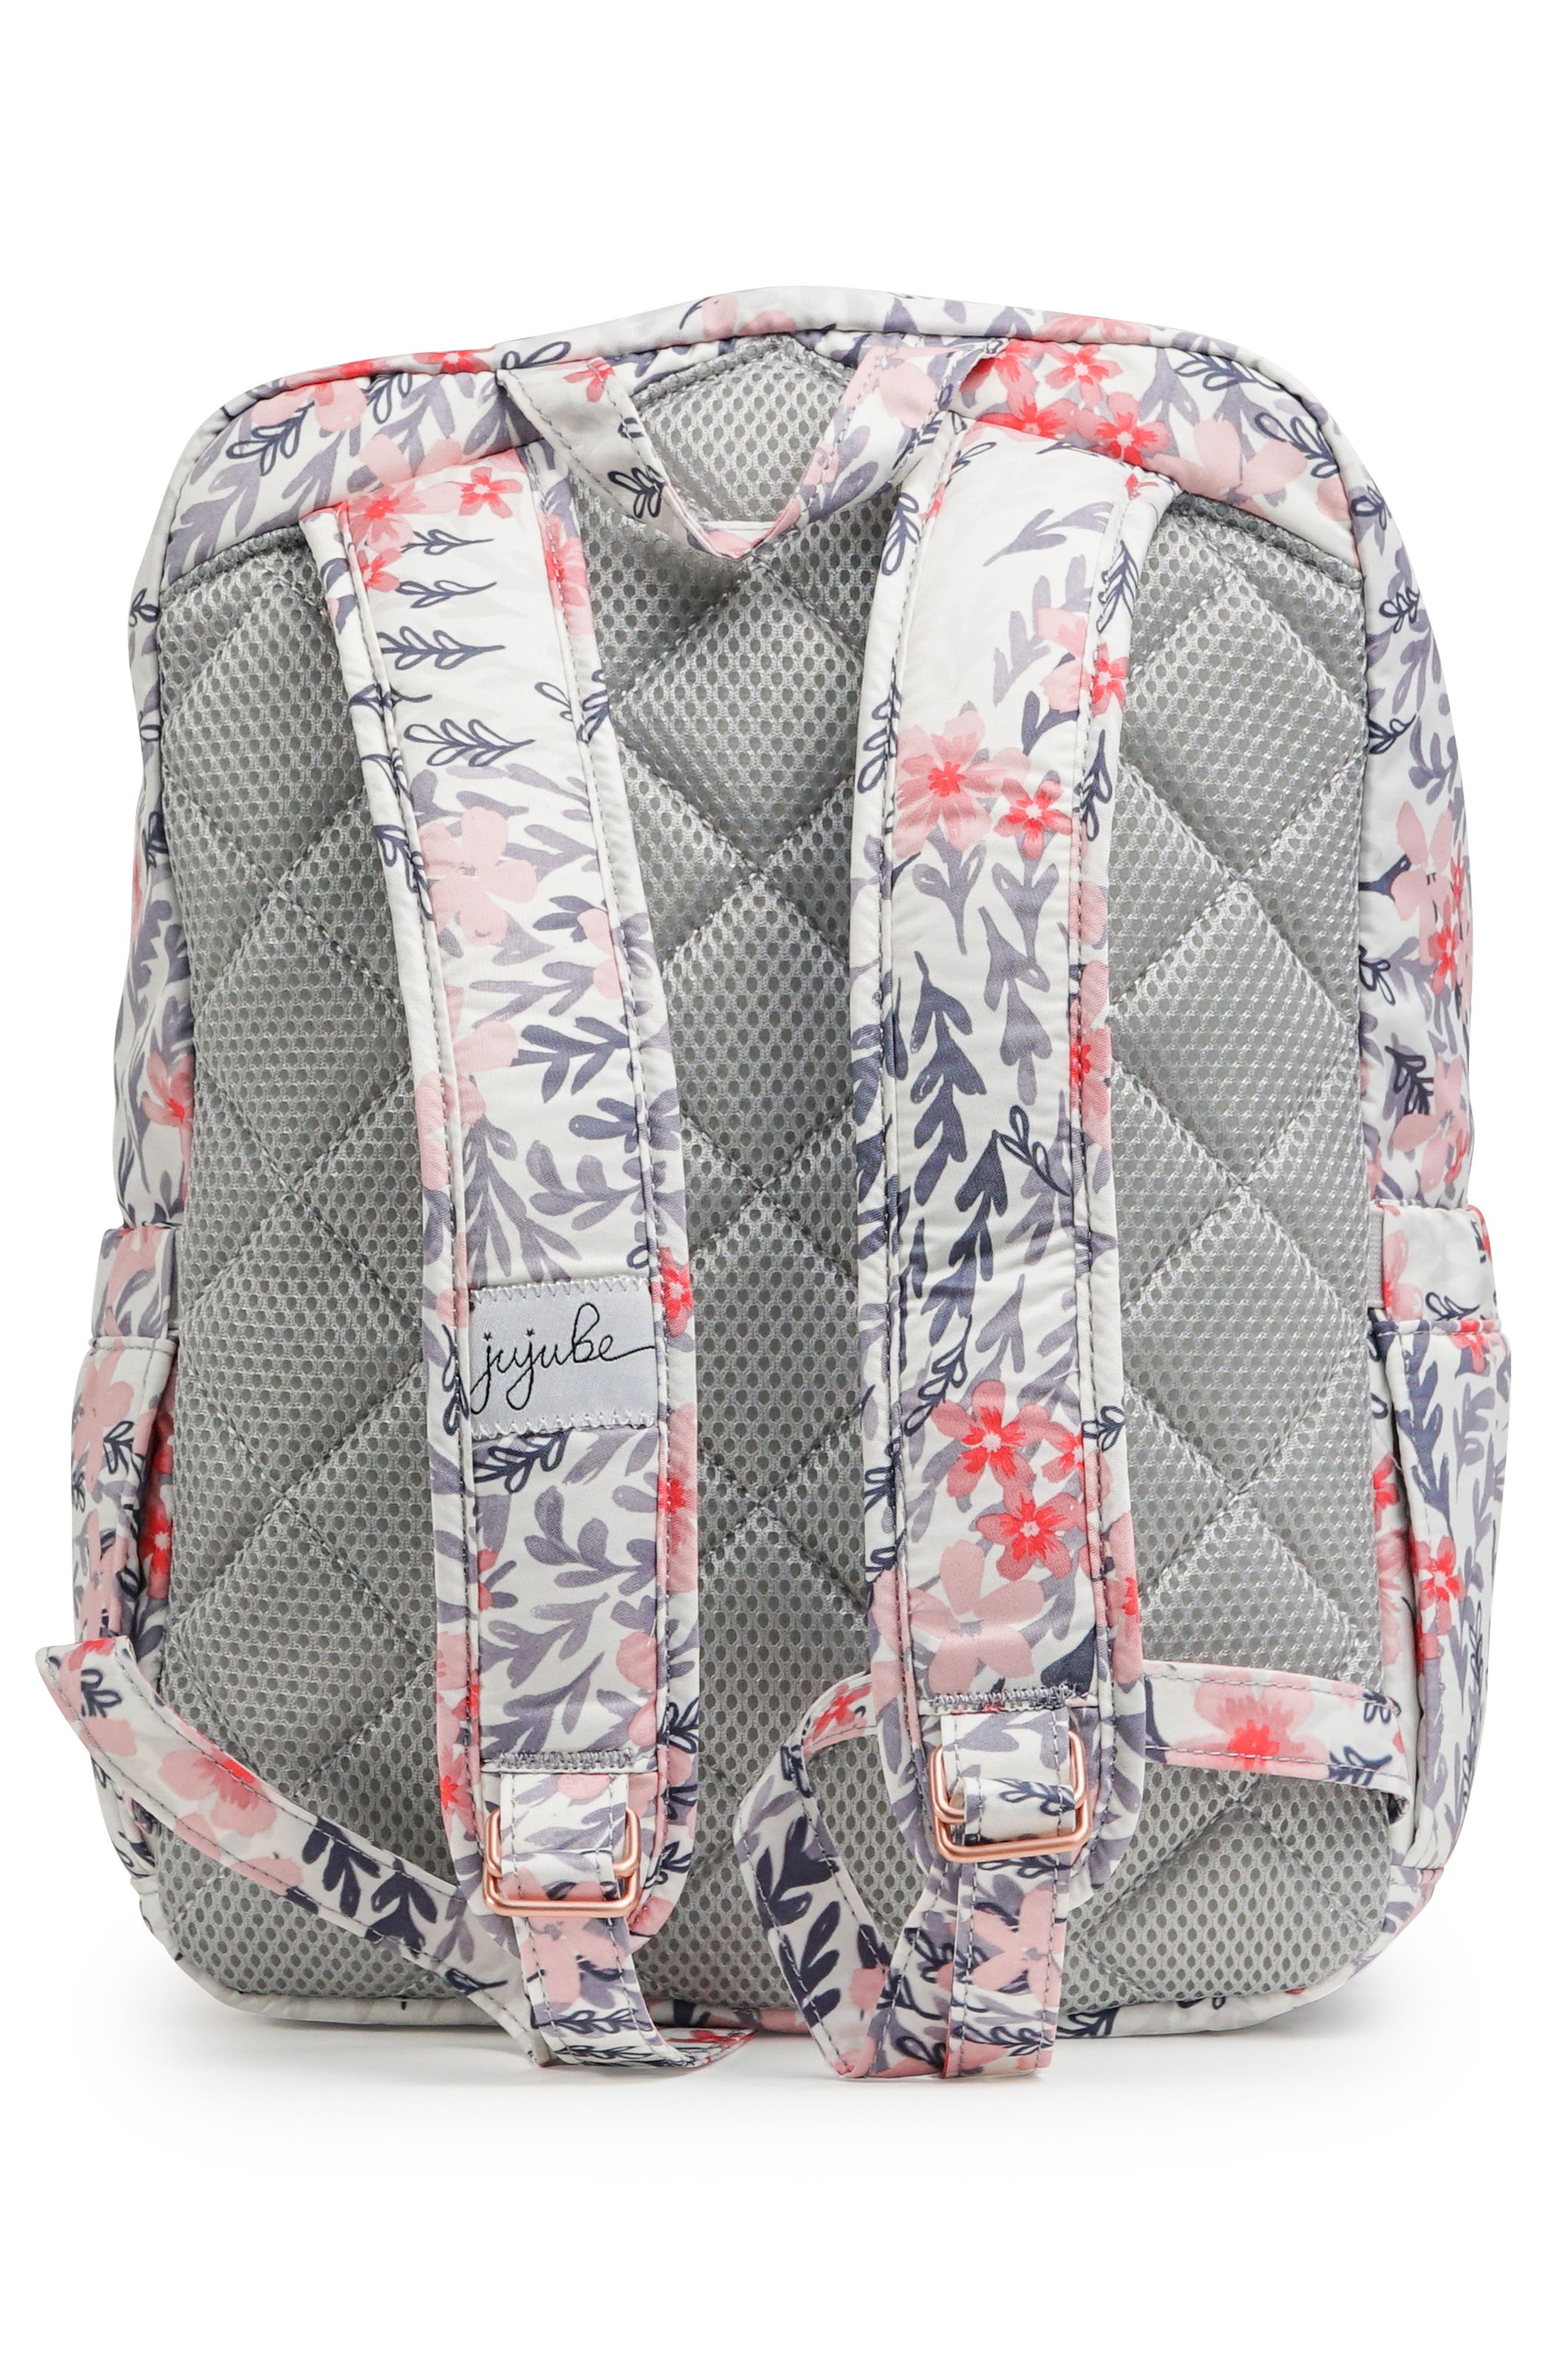 MiniBe Rose Backpack,                             Alternate thumbnail 5, color,